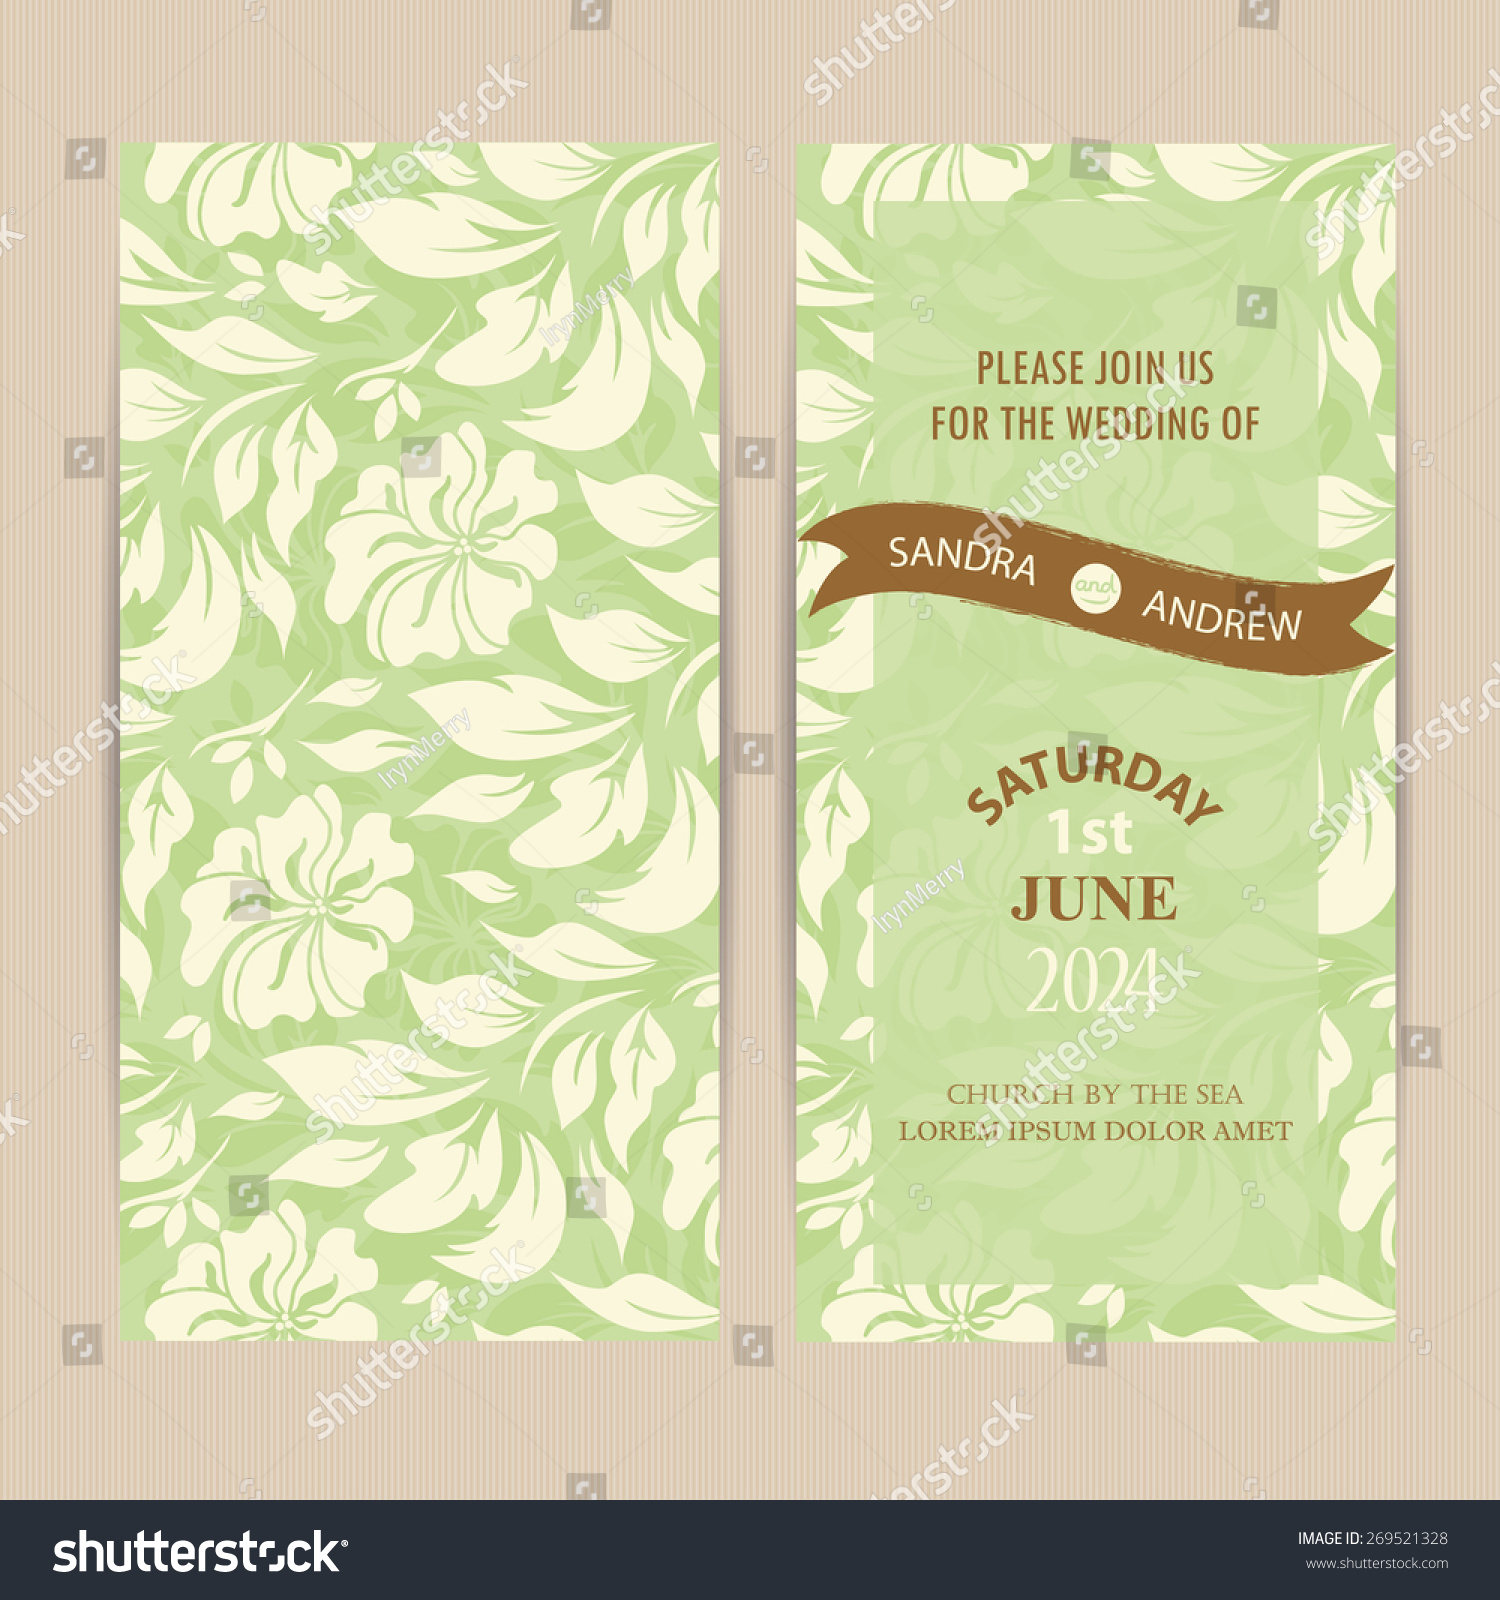 Wedding Invitation Card Stock Vector 269521328 - Shutterstock